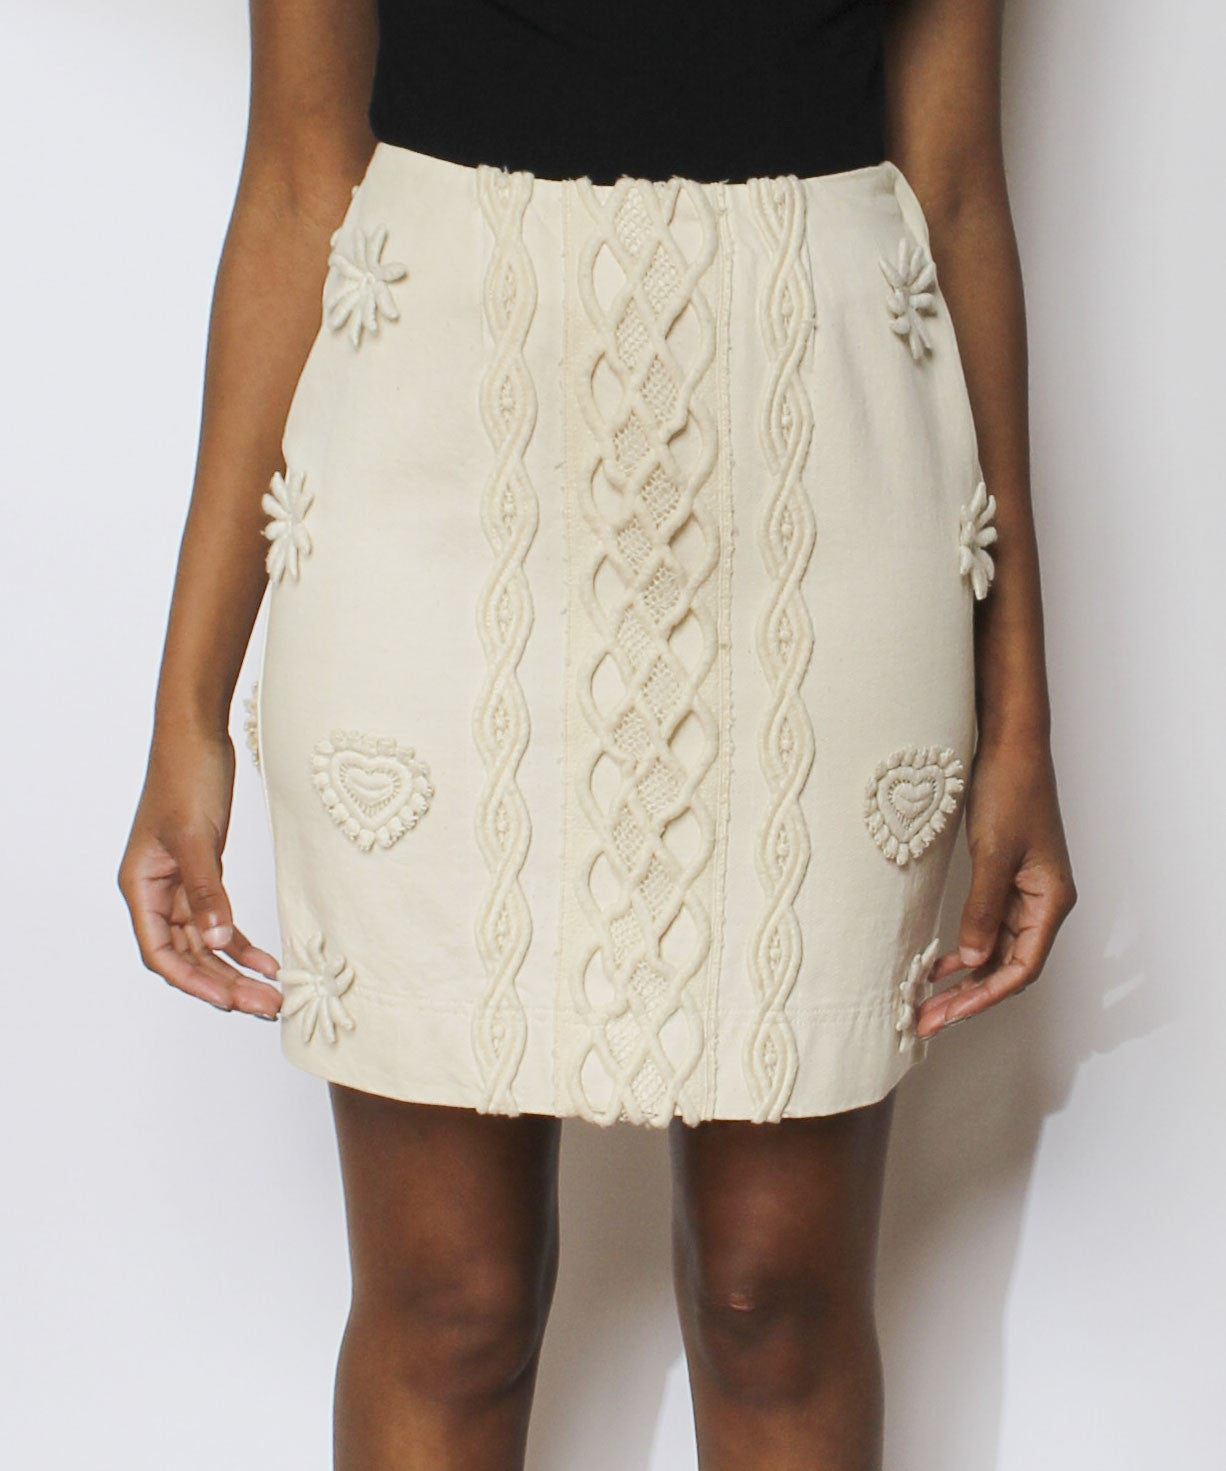 Alberta Ferretti Jeans Cream Denim Pencil Skirt with Knit Appliqués